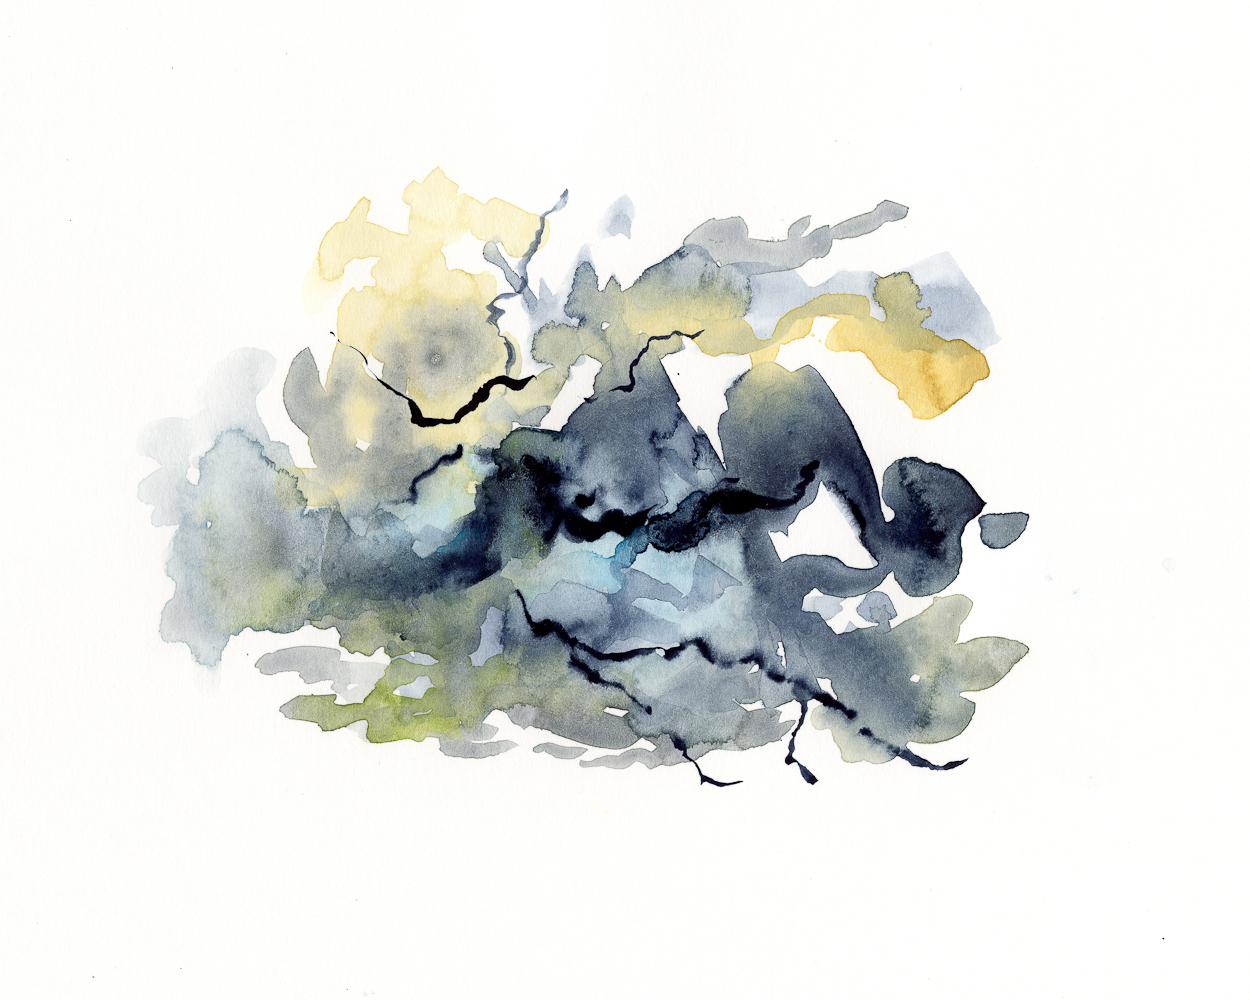 watercolor038.jpg